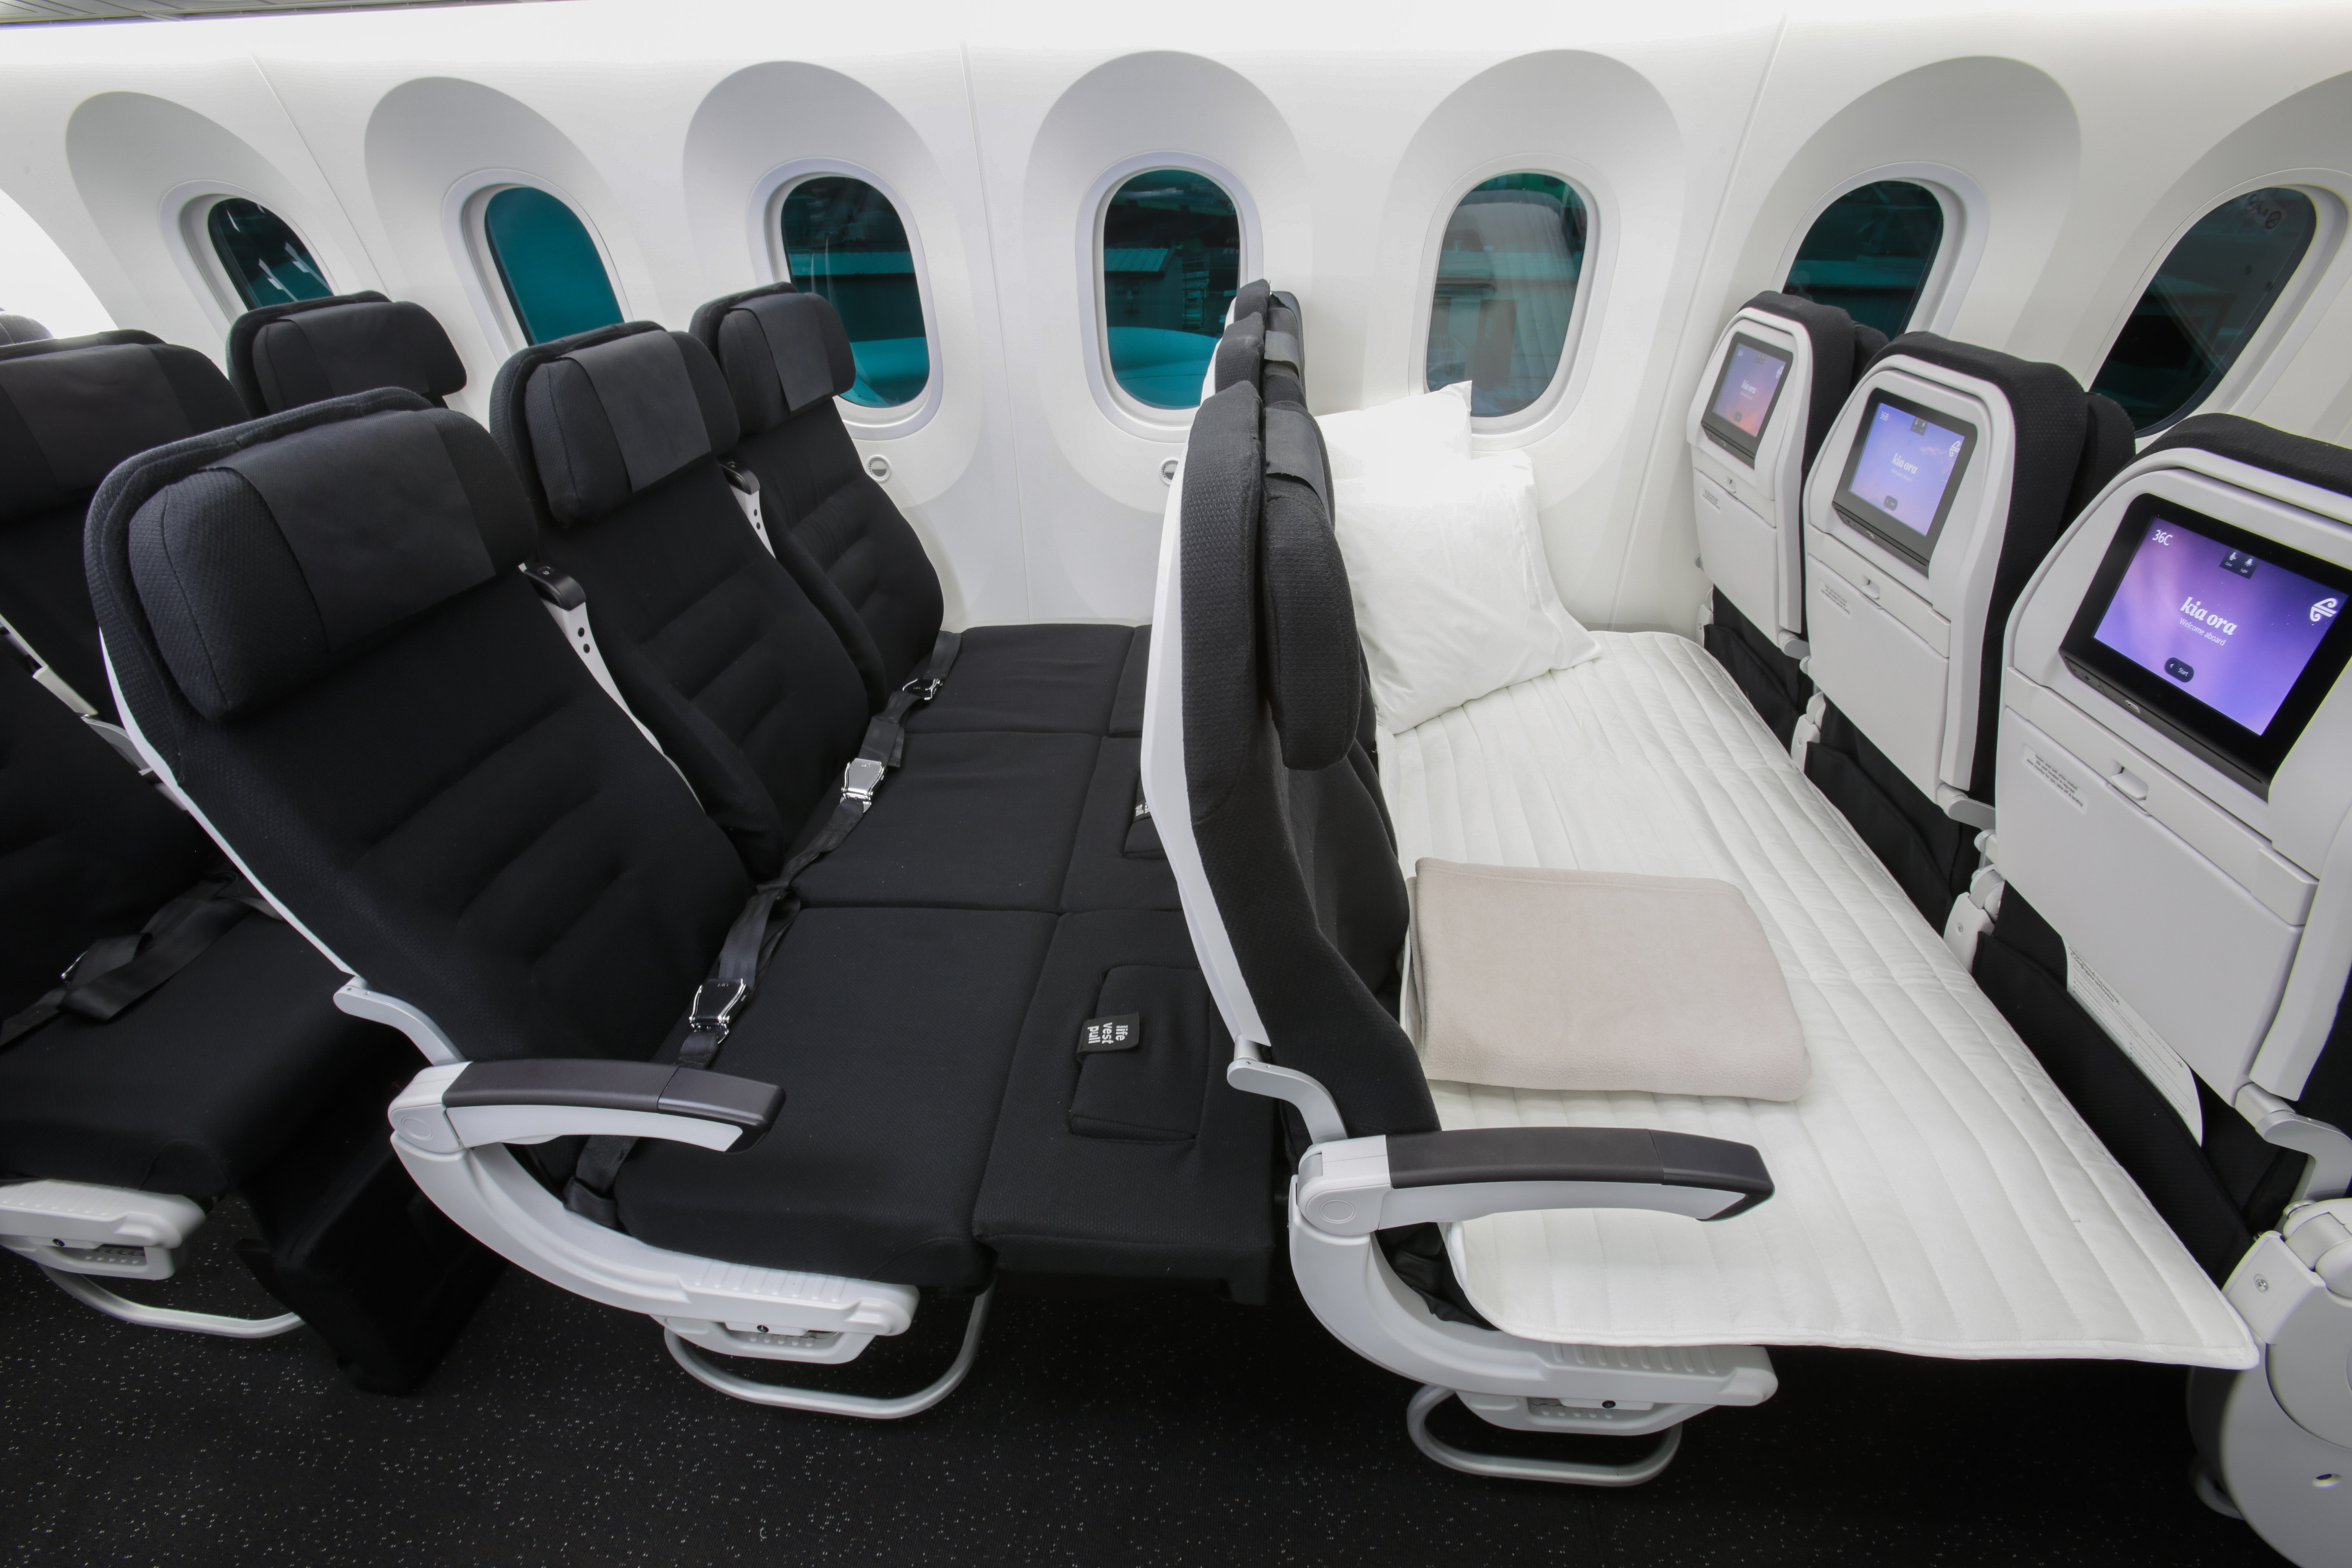 Air new zealand premium economy images Aamna Shariff Photo Gallery - India Forums